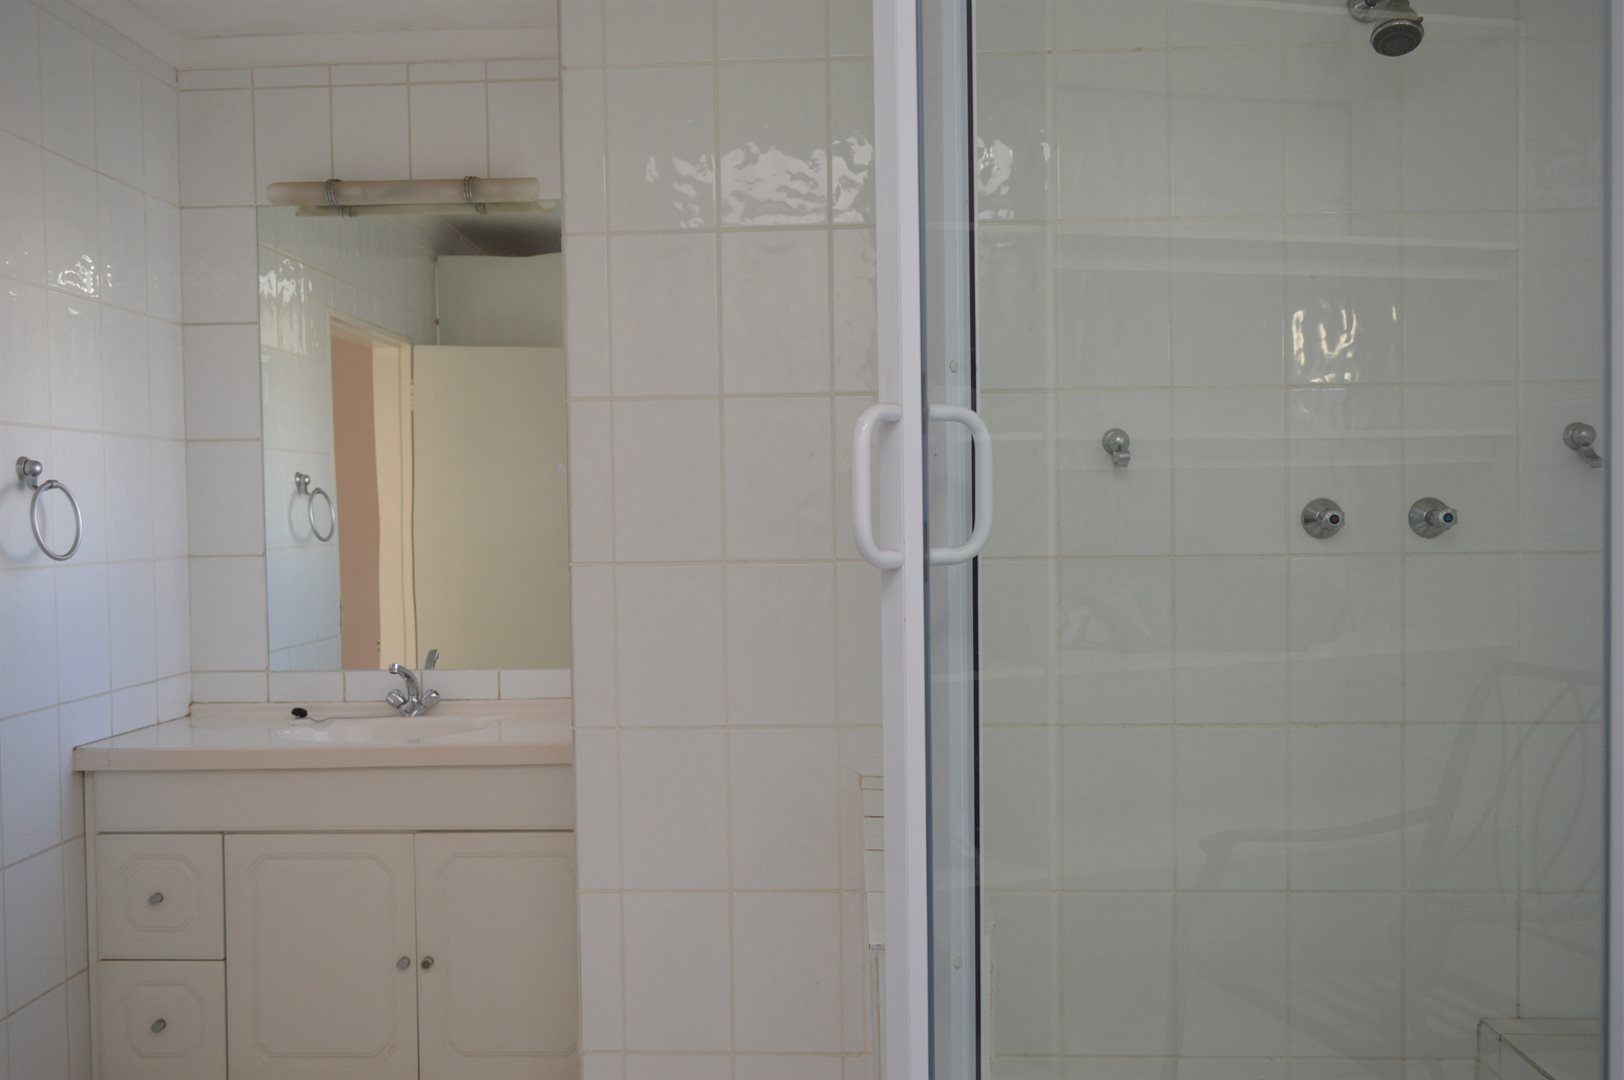 Highlands North property for sale. Ref No: 13649352. Picture no 16